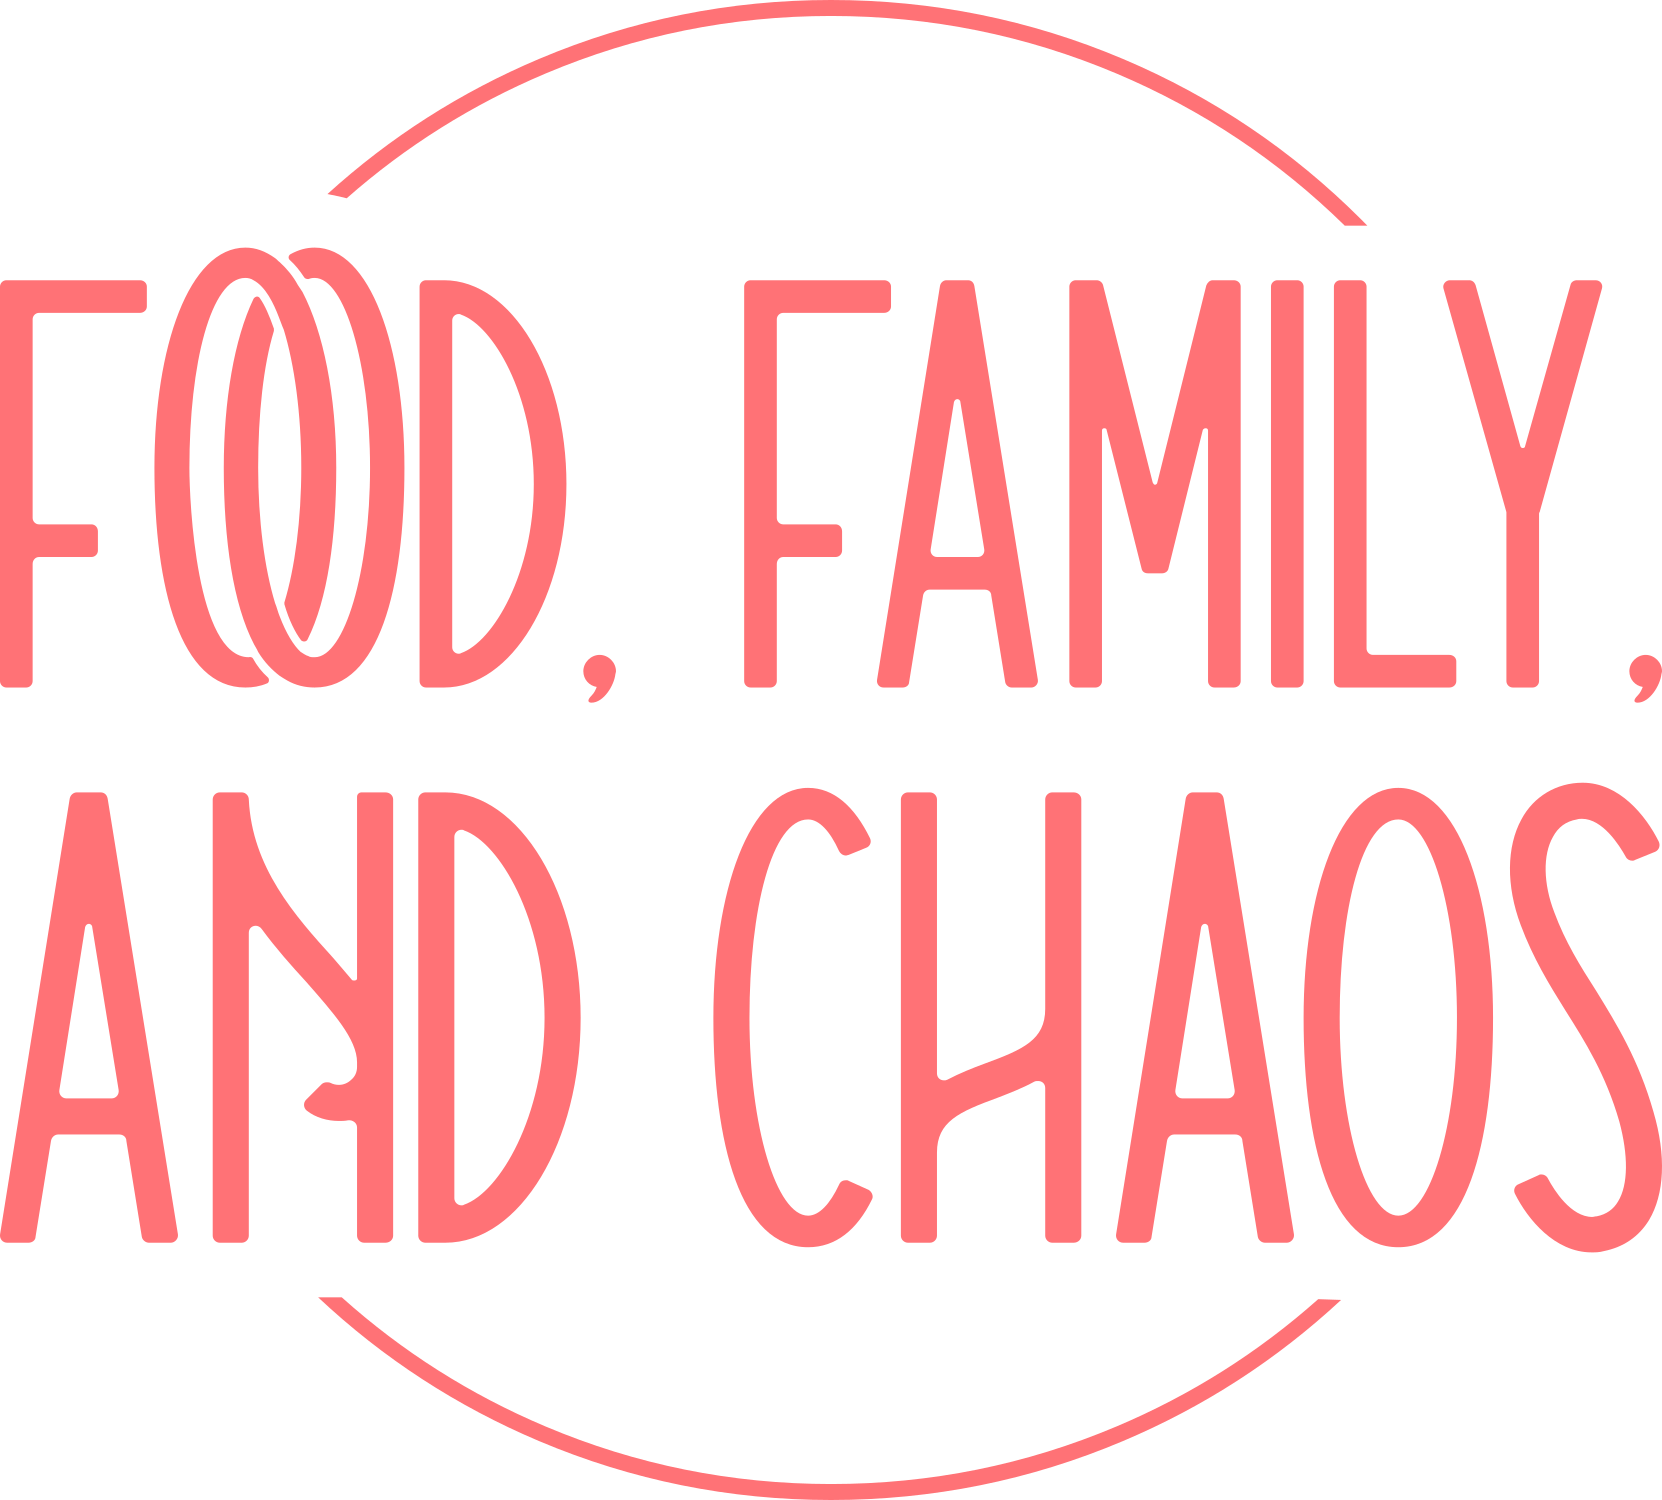 Food Family and Chaos